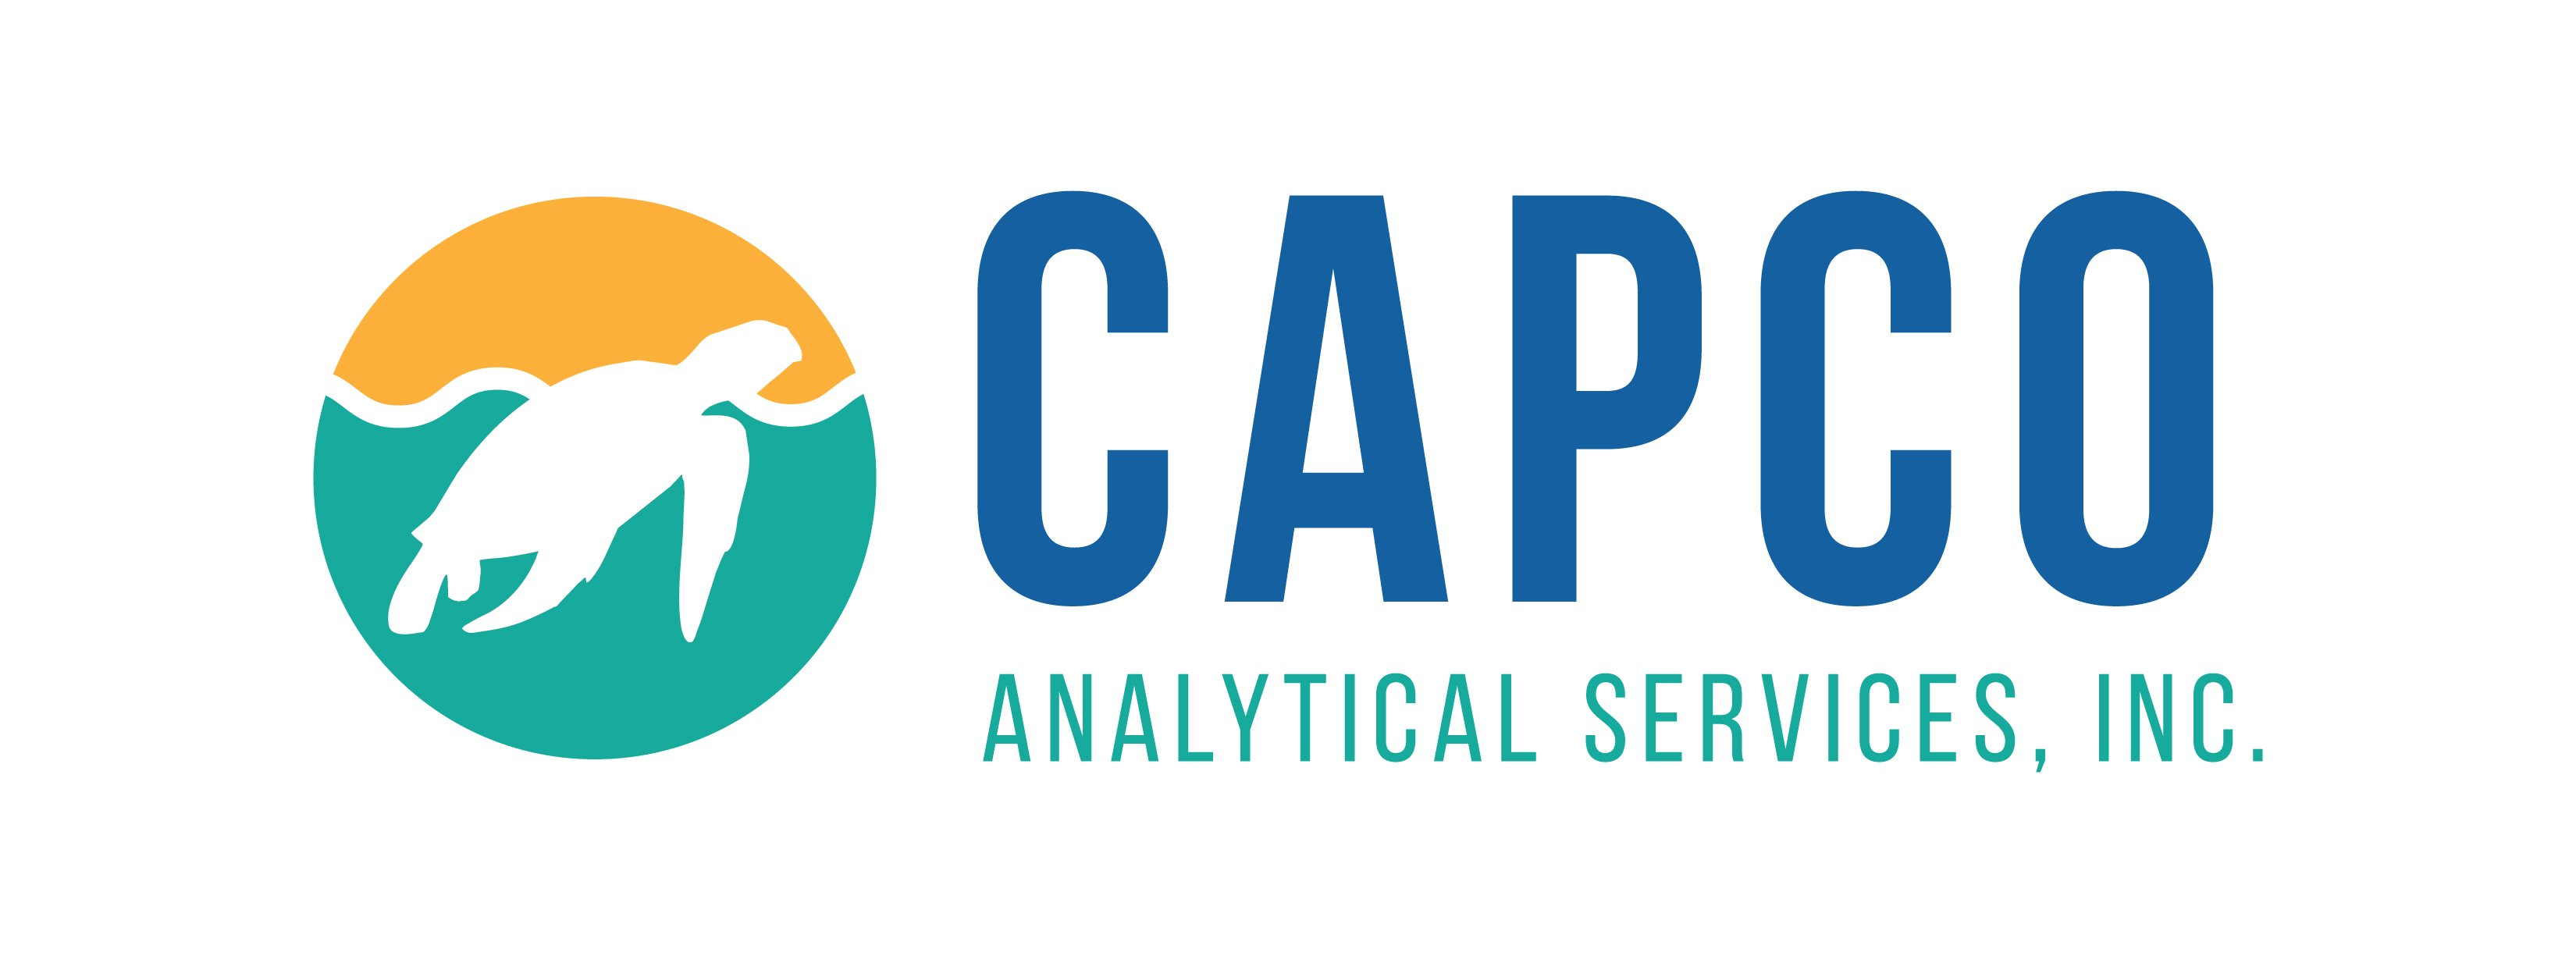 Capco Analytical Services